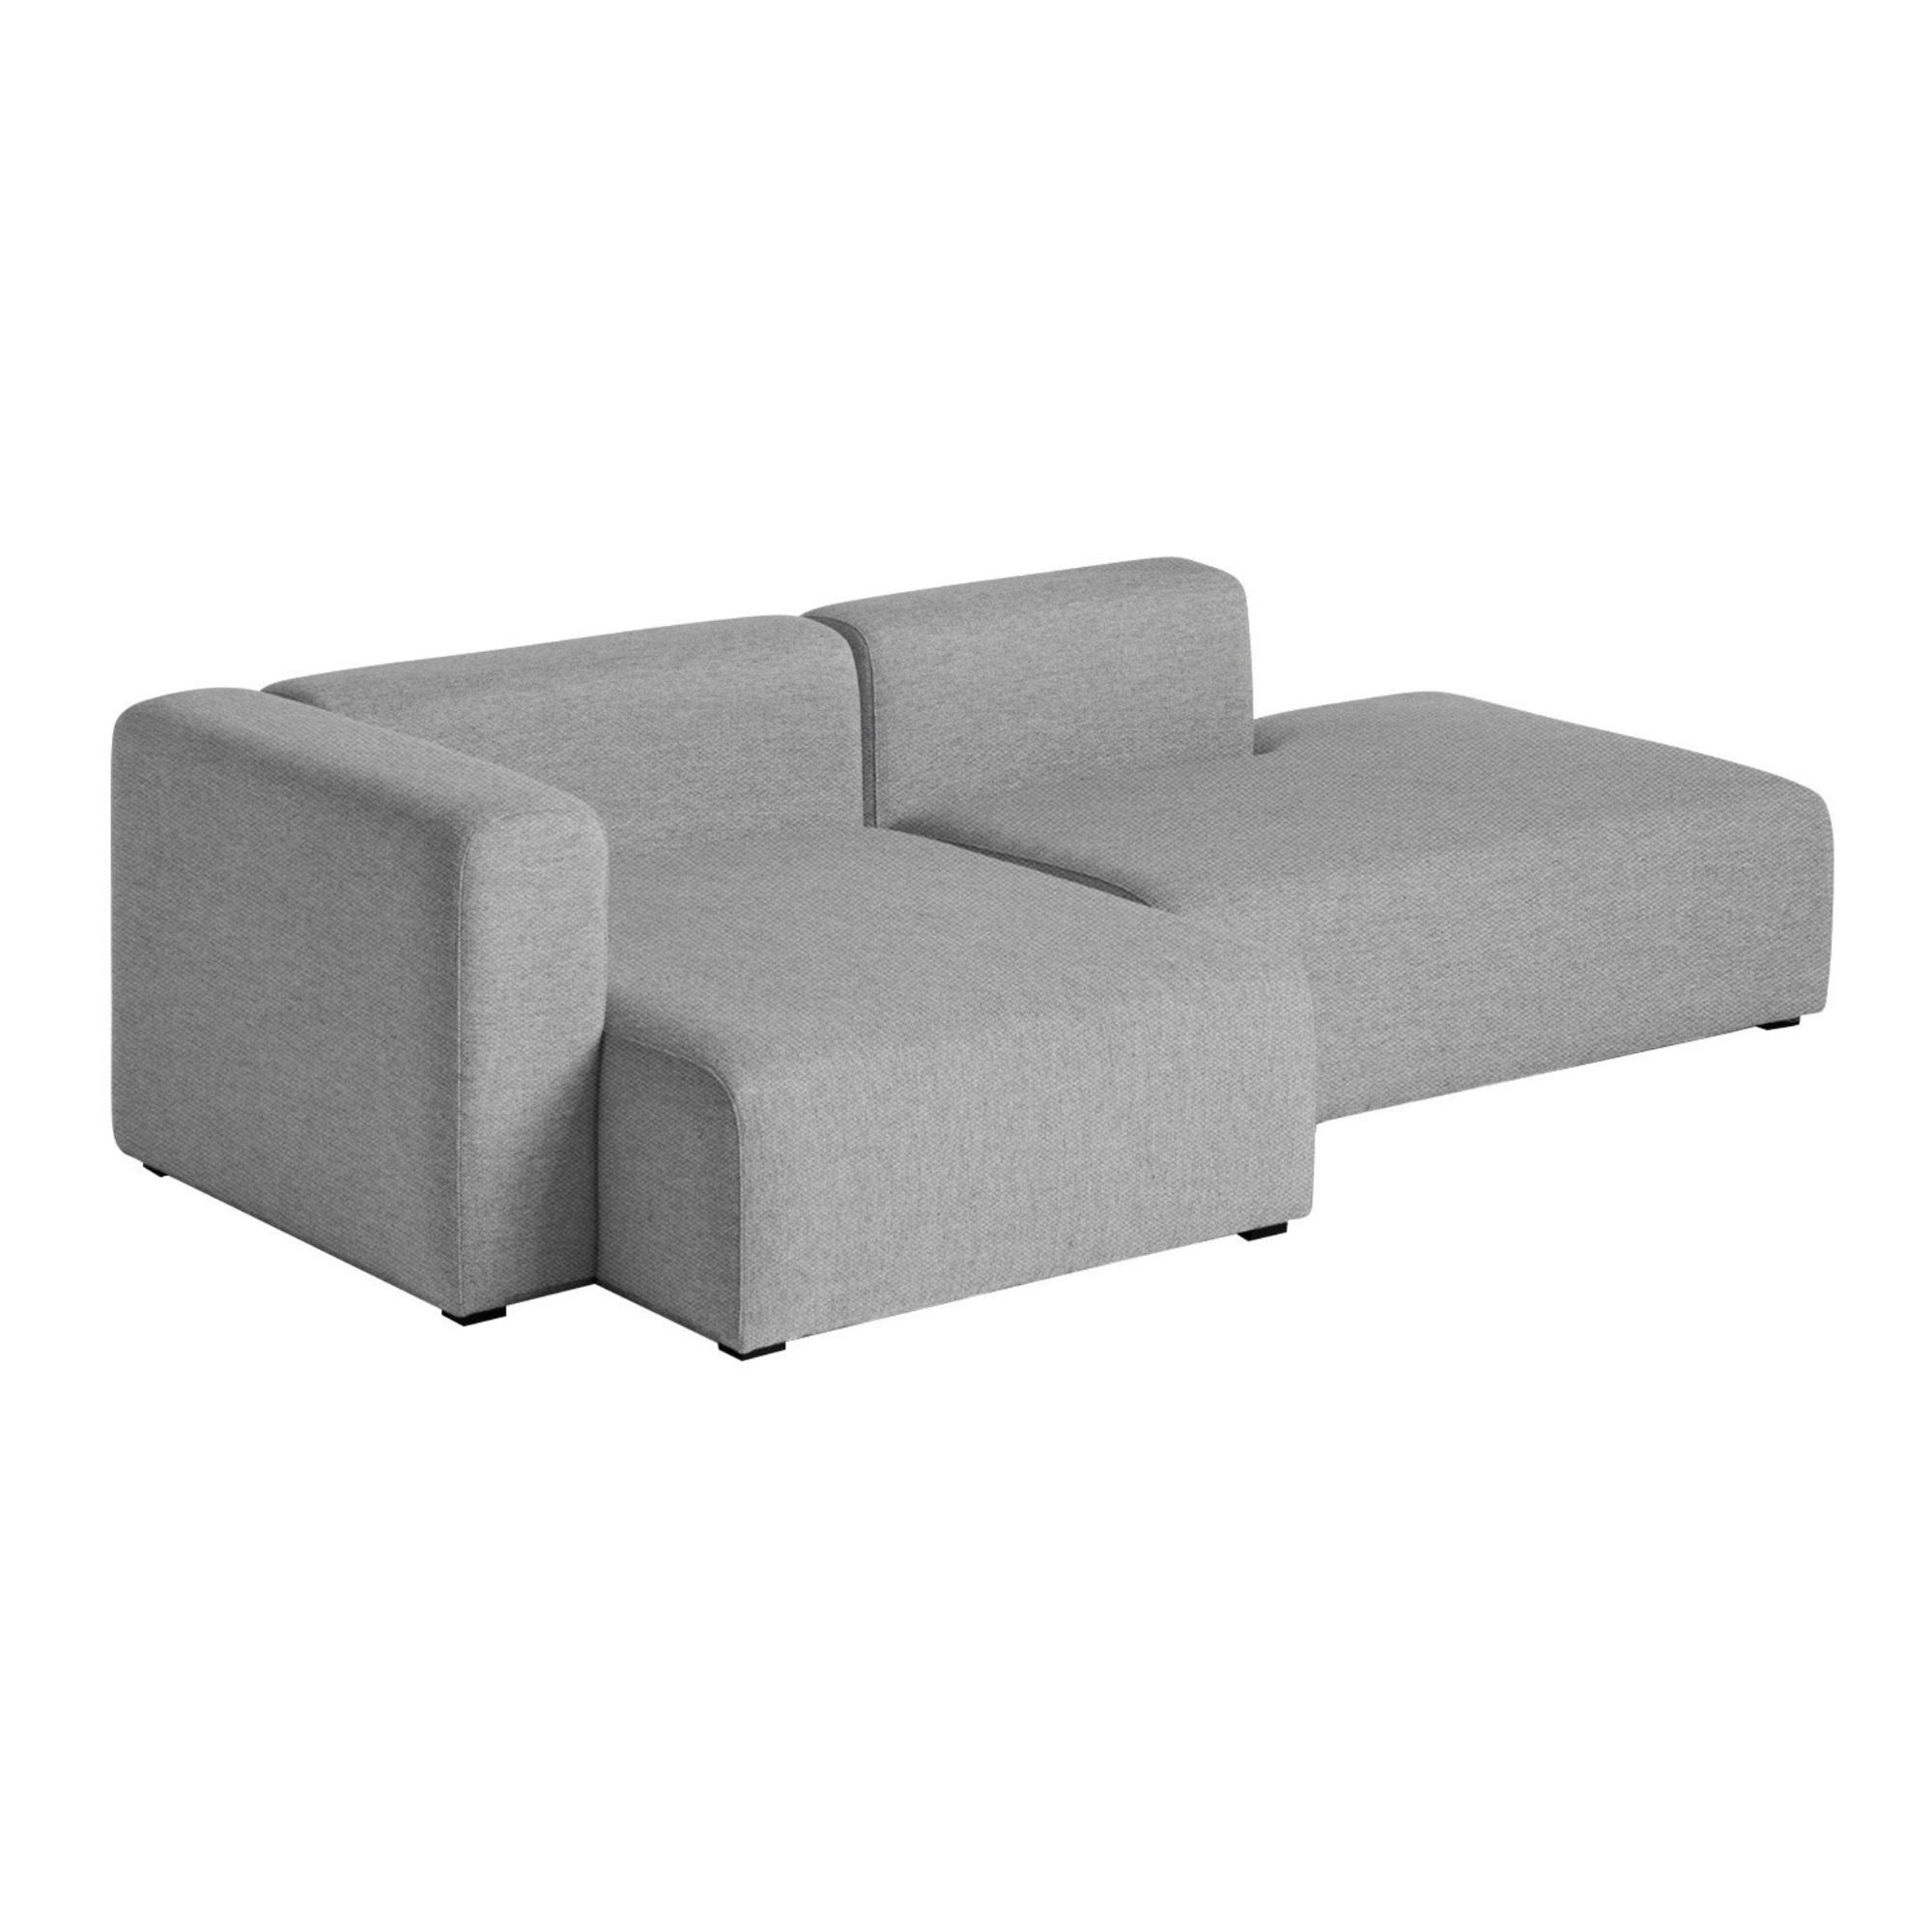 Hay Mags 2.5 seater lounge sofa, steelcut trio 133